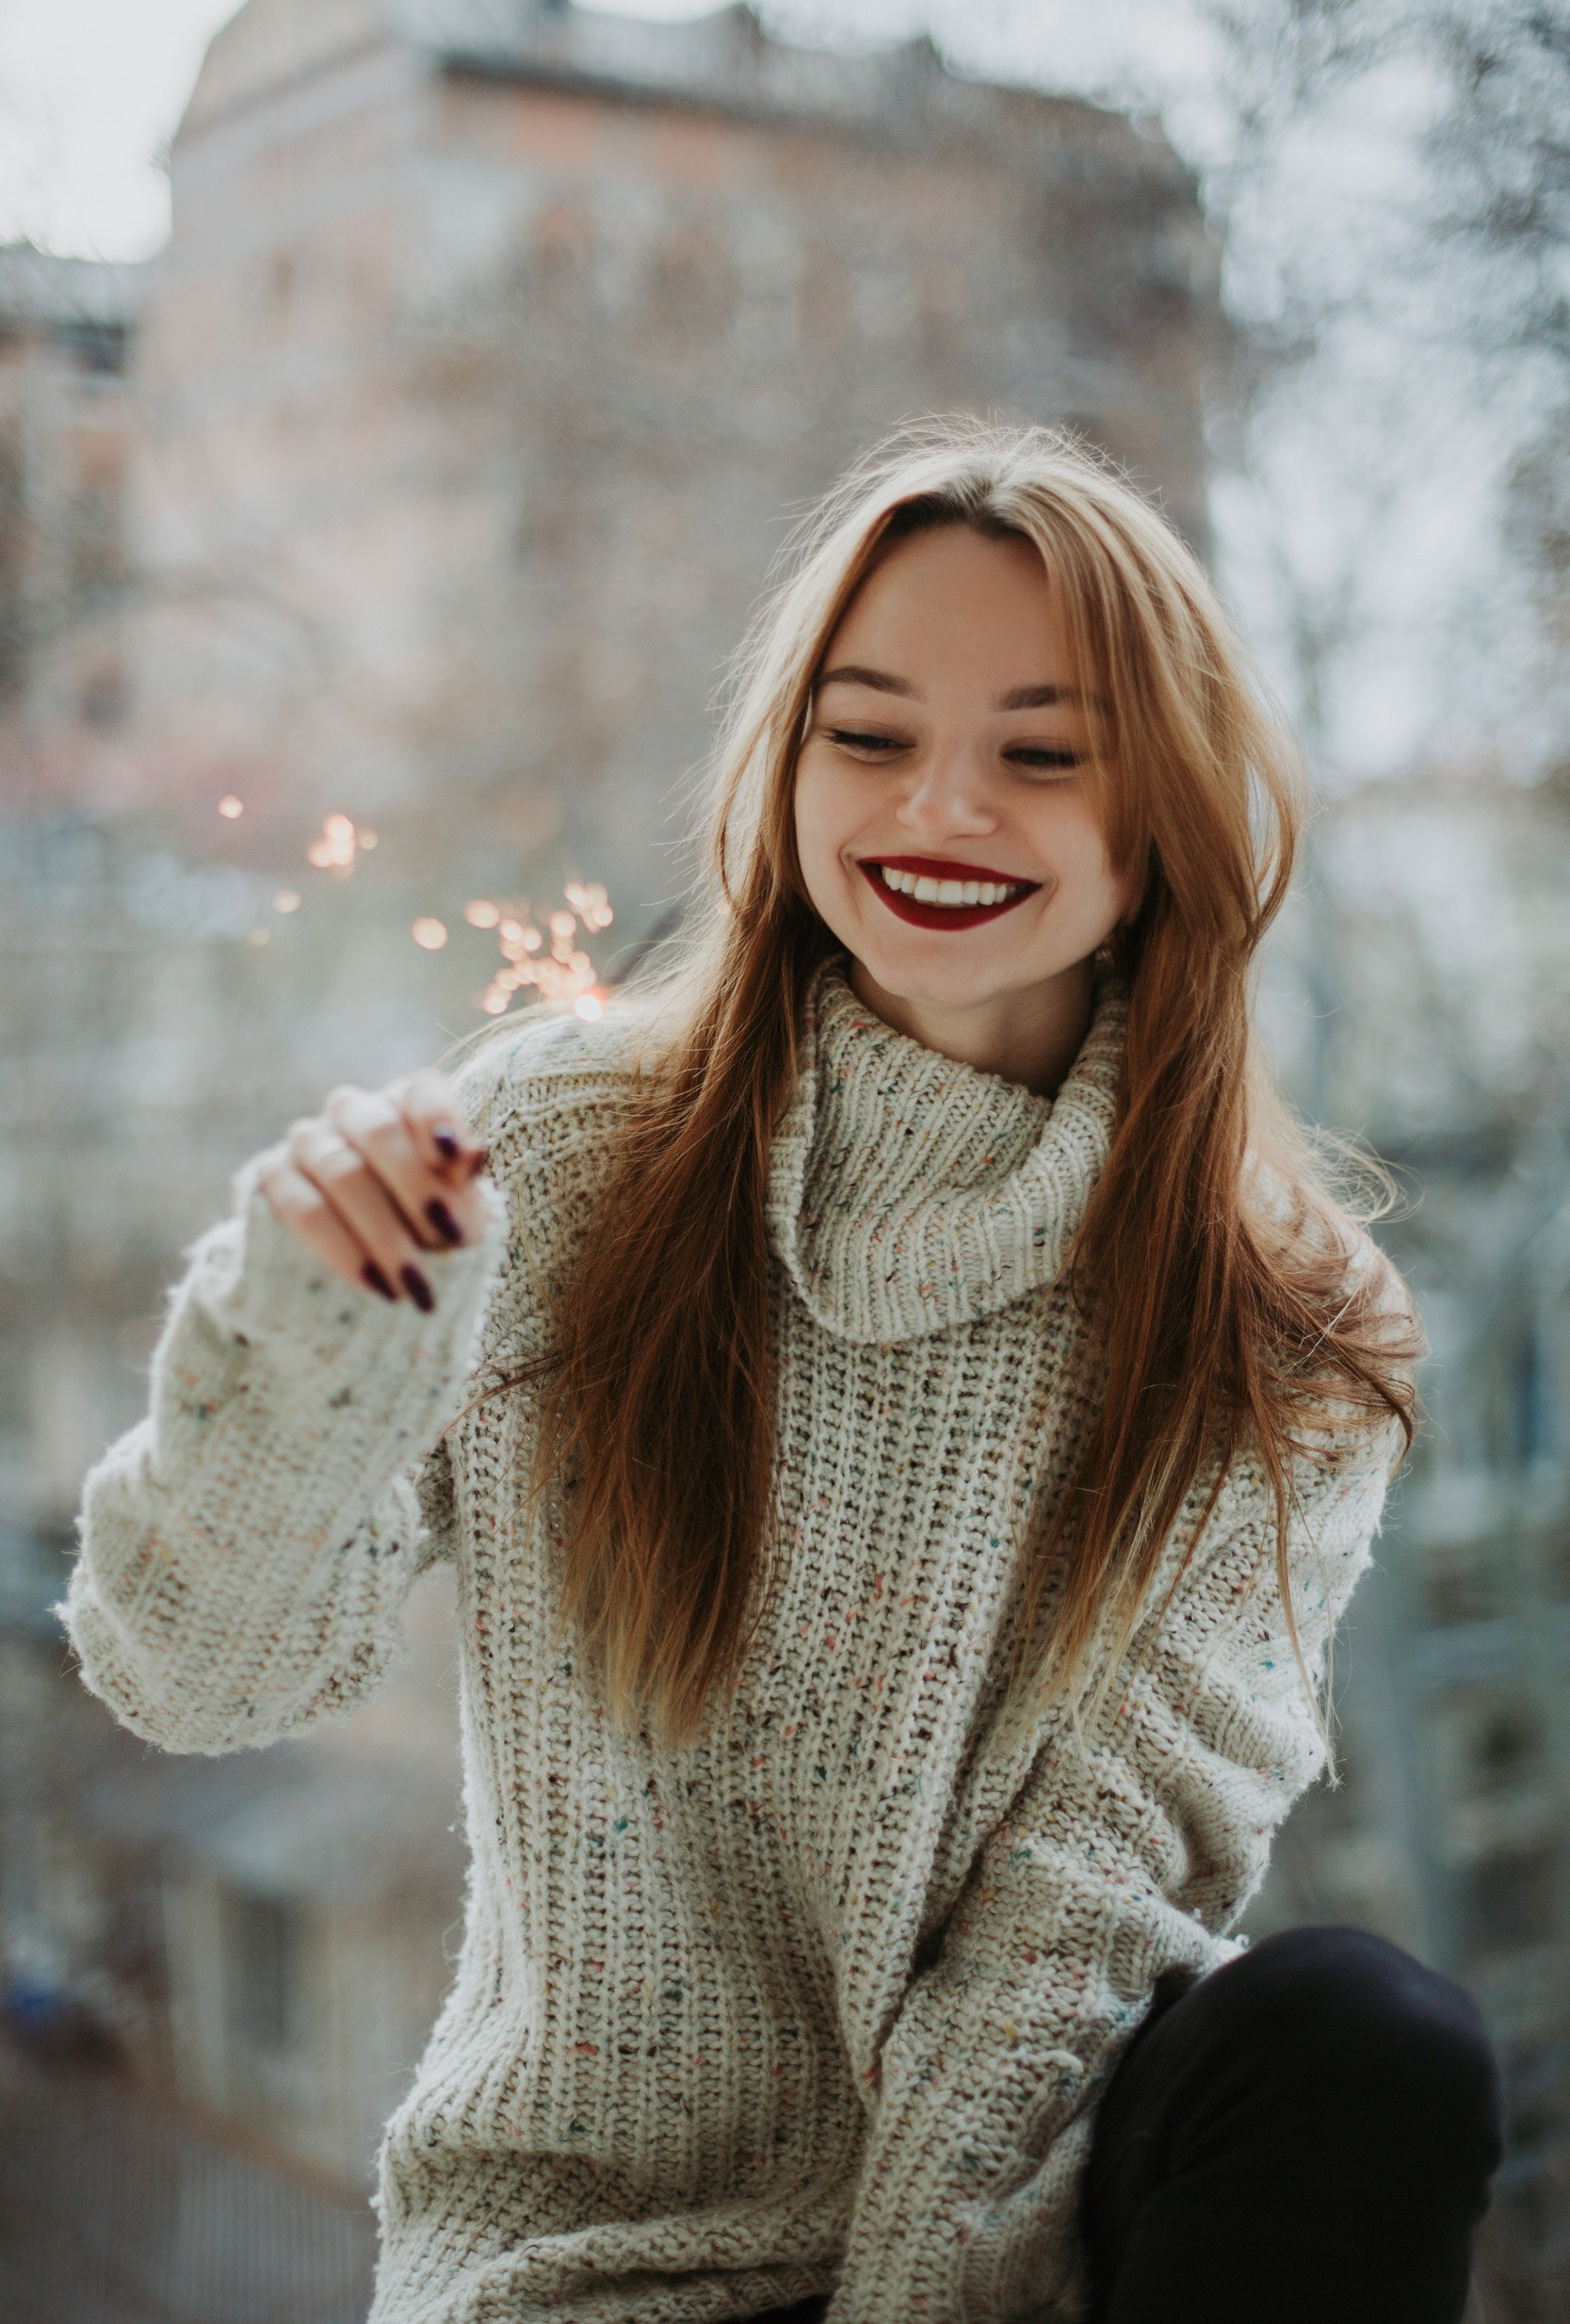 Woman Wears White Knit Turtleneck Long-sleeved Shirt With Blonde Hair, Pretty, Person, Smile, Woman, HQ Photo